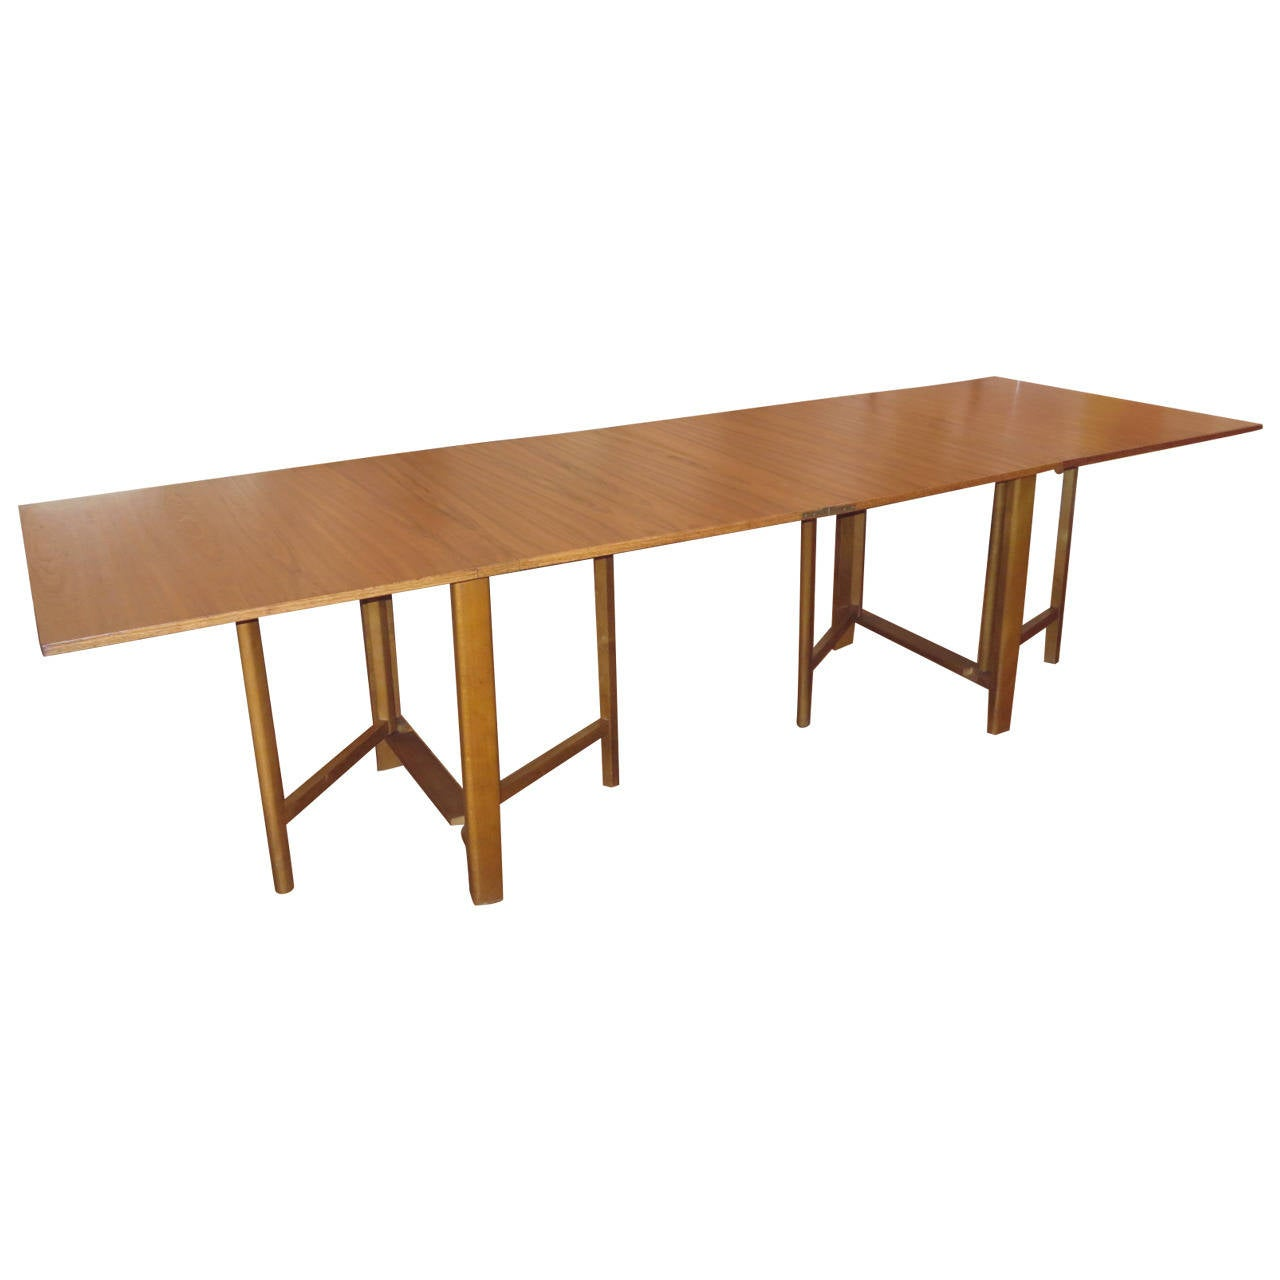 Bruno Mathsson quotMariaquot Dining Table at 1stdibs : 2166062l from www.1stdibs.com size 1280 x 1280 jpeg 47kB